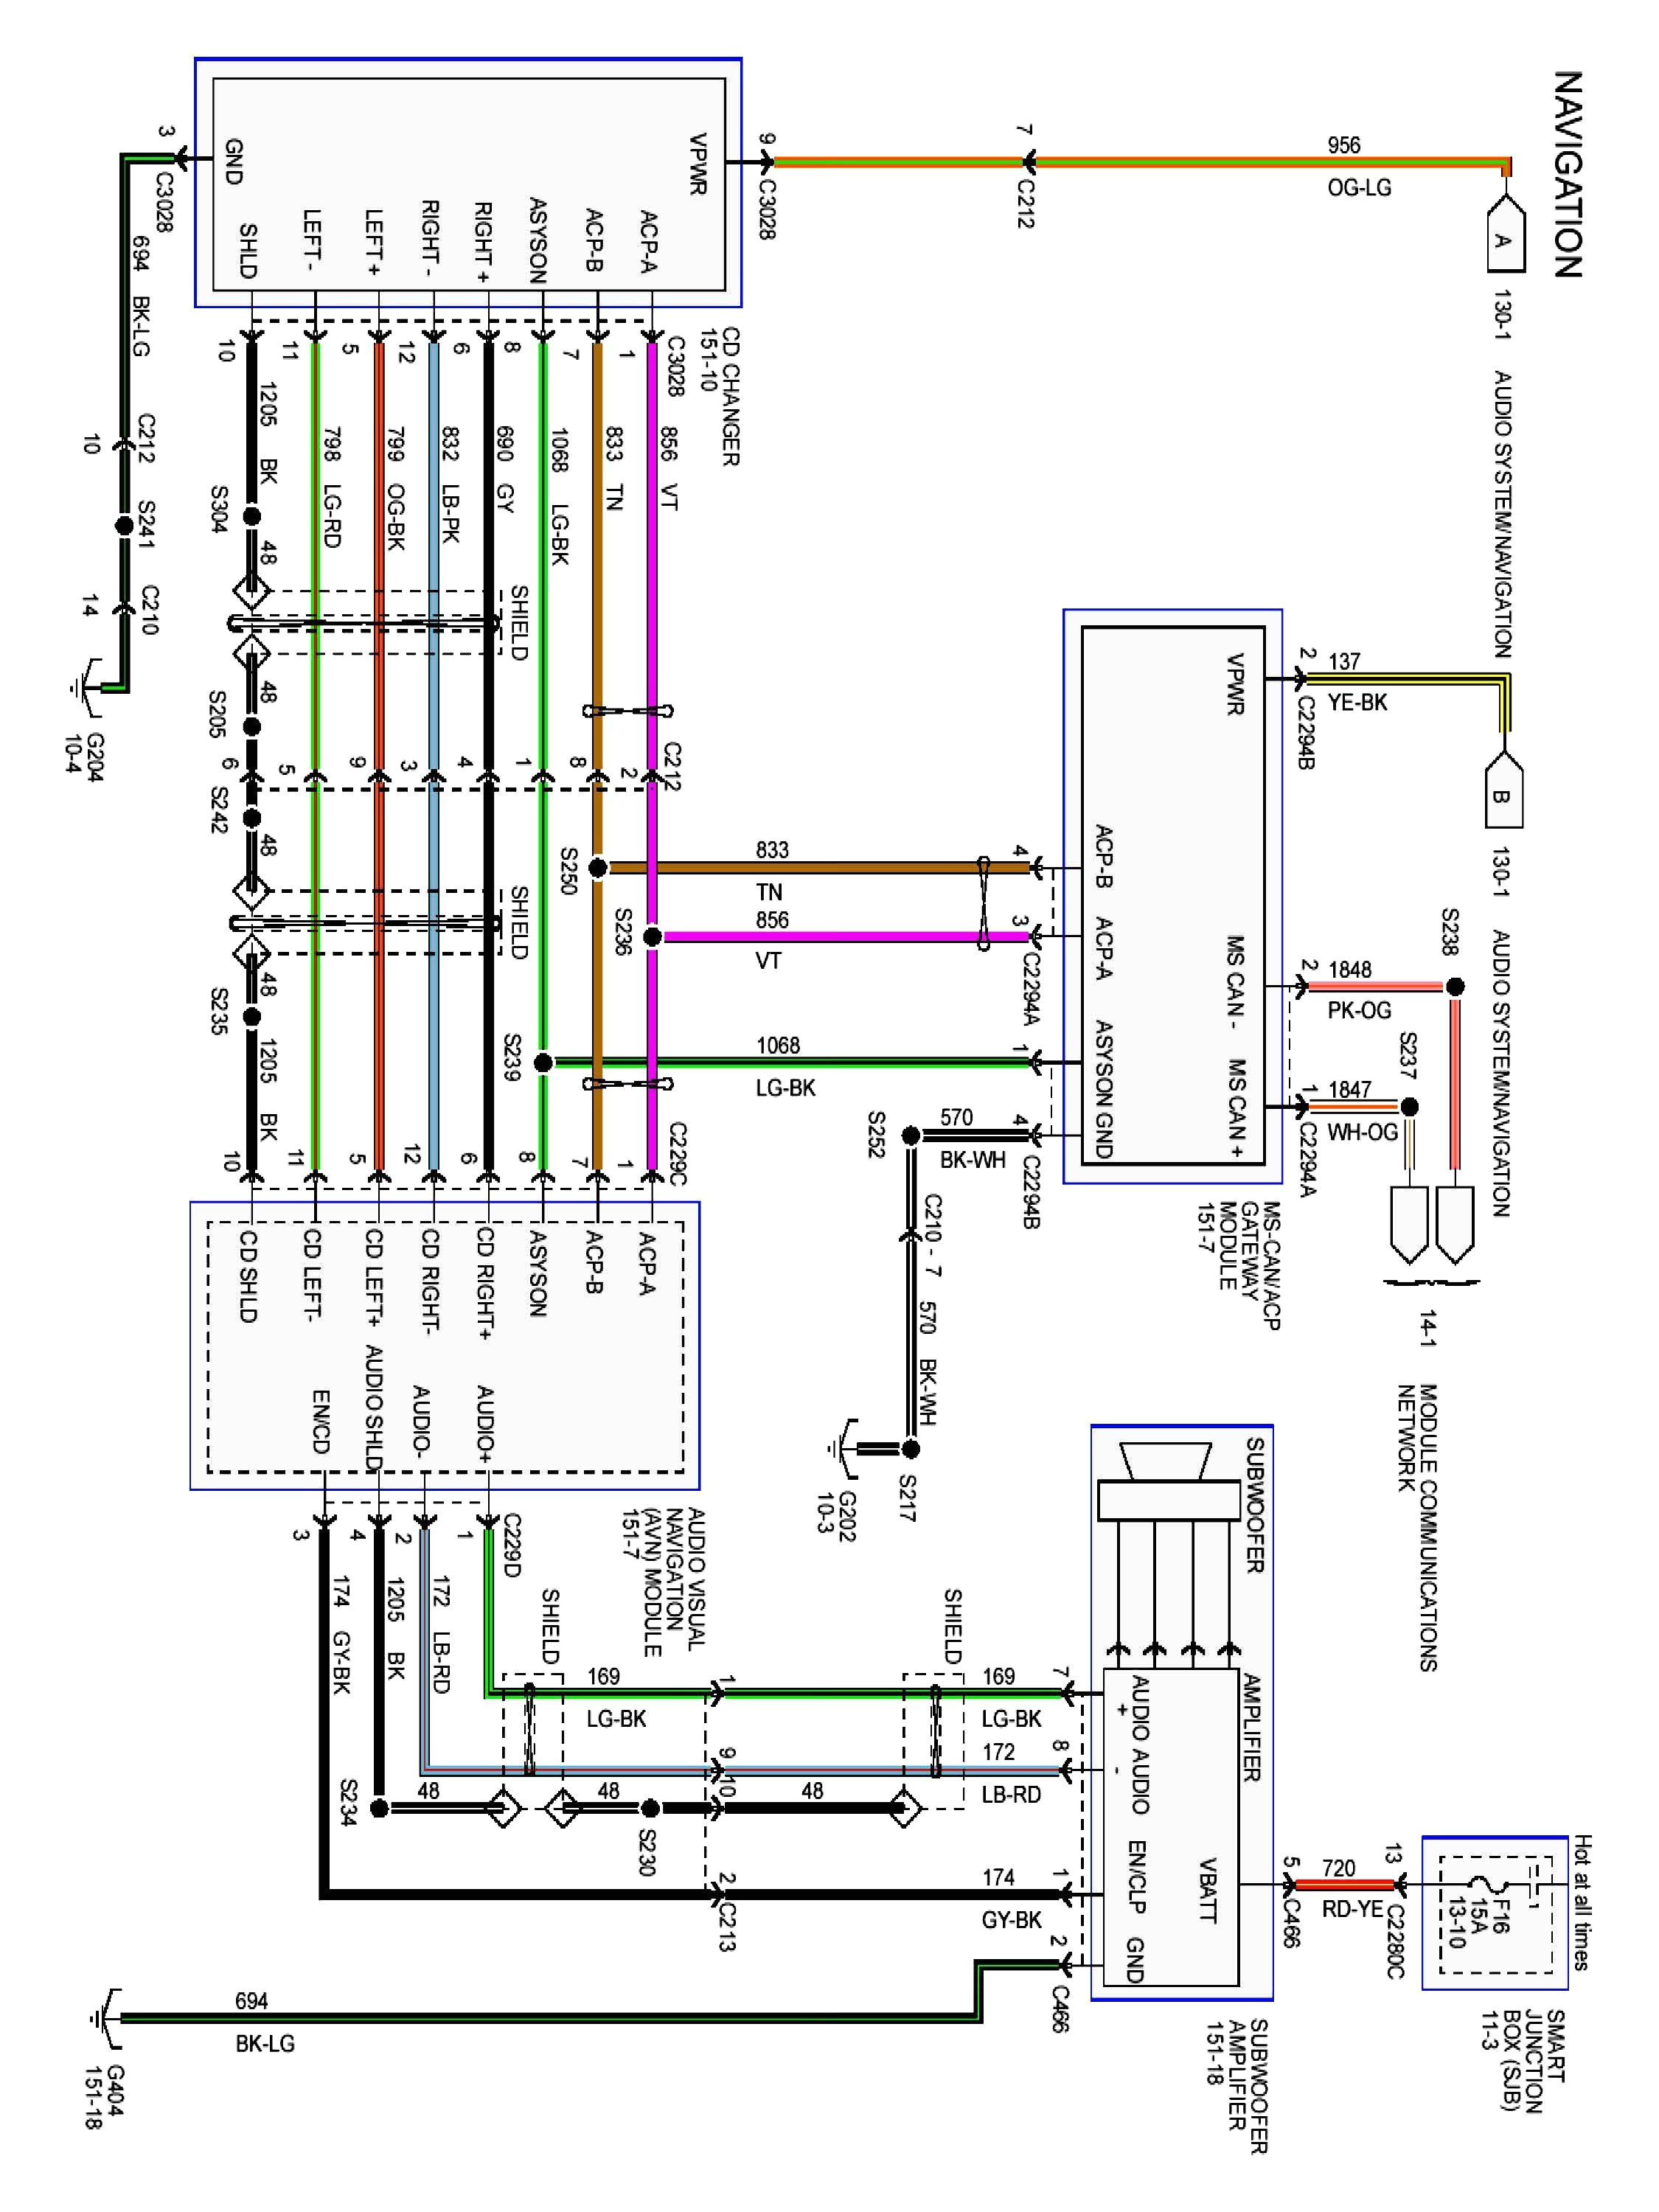 07 ford wiring diagram wiring diagram operations 07 ford focus wiring diagram 07 f250 wiring diagram